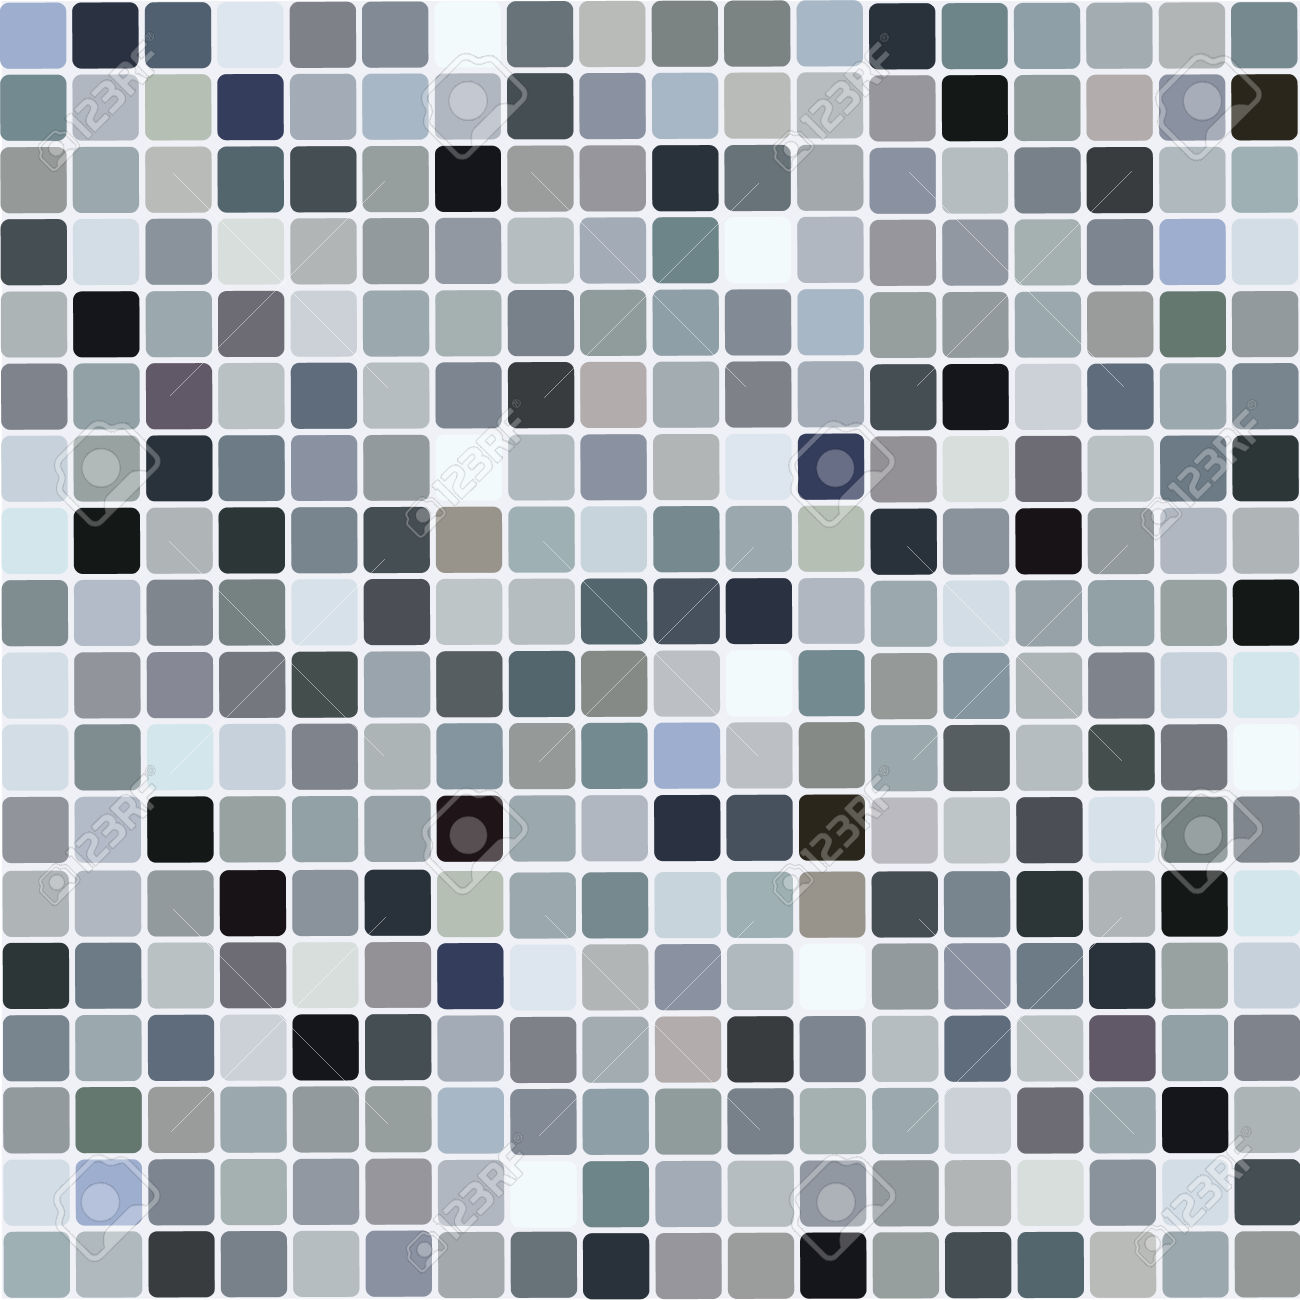 Color Tile Texture Vector Format Royalty Free Cliparts, Vectors.